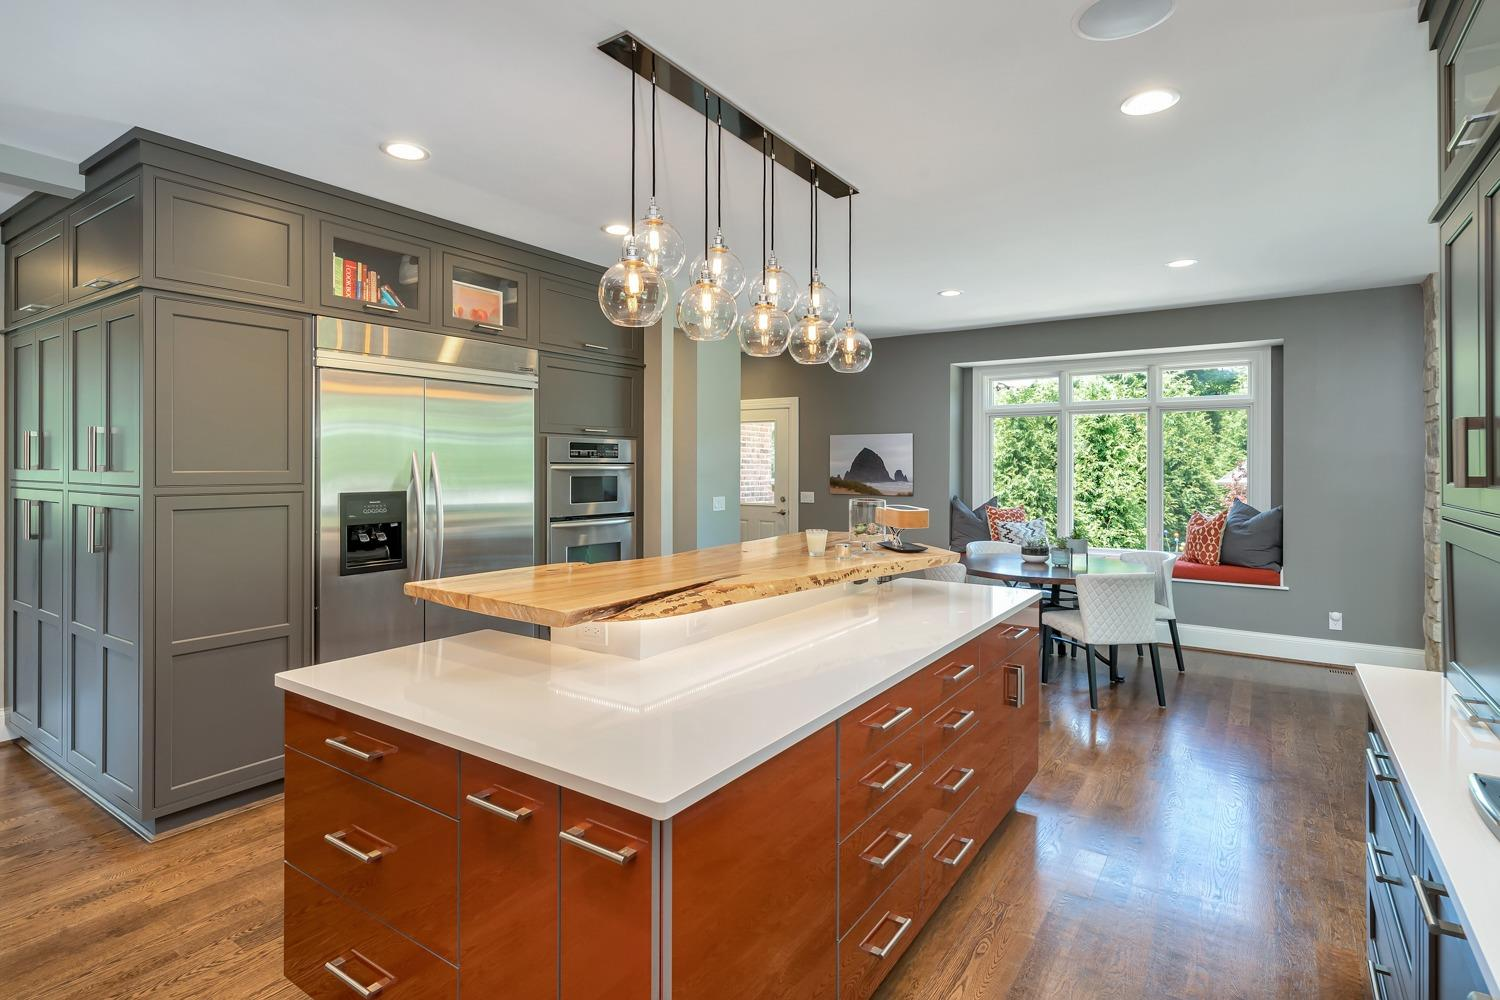 Kitchen features Plain and Fancy custom cabinets, a perfect blend of rustic and modern. For those keeping score upper cabinets are wired copper gloss acrylic and pantry and lower cabinets are maple in java enamel. Also shown is oversized Cambria countertop.